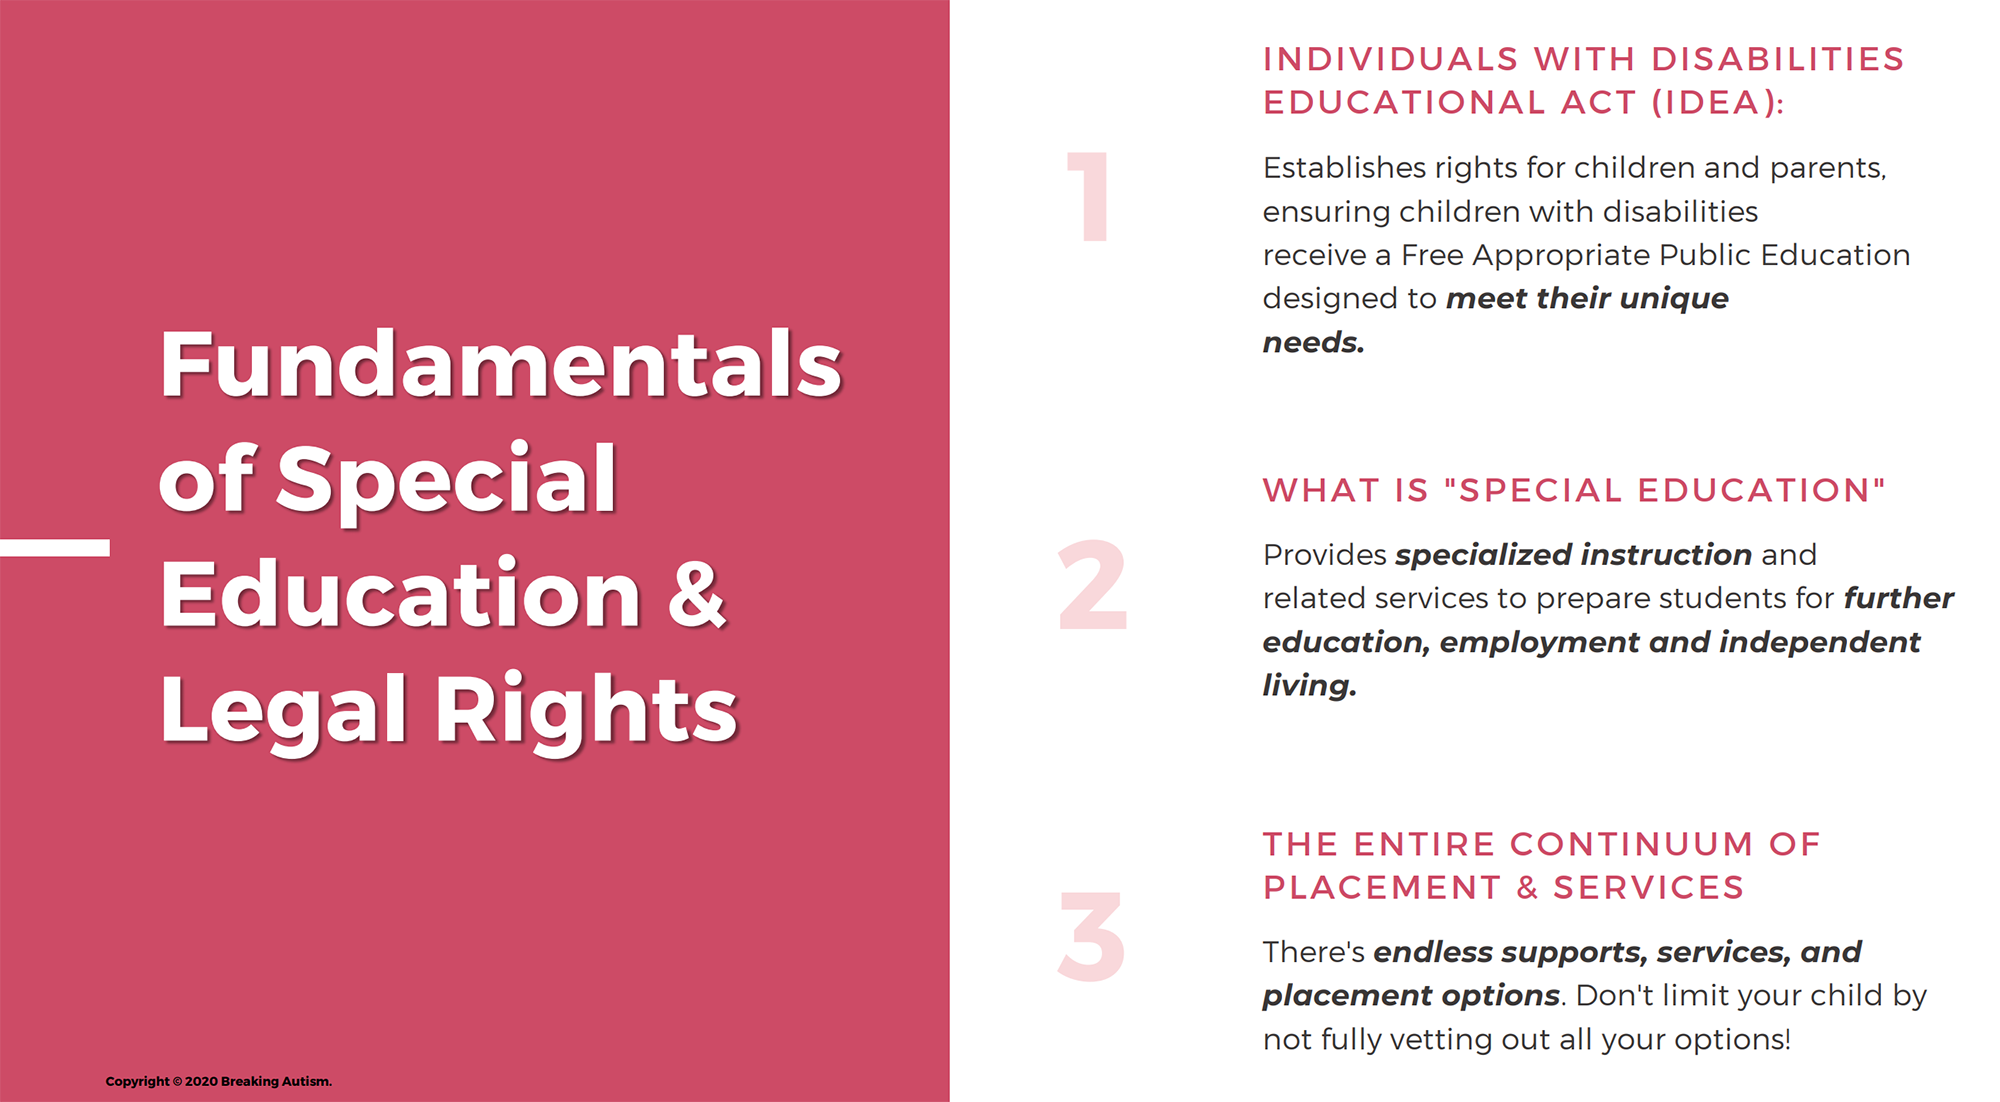 Fundamentals of Special Education and Legal Rights